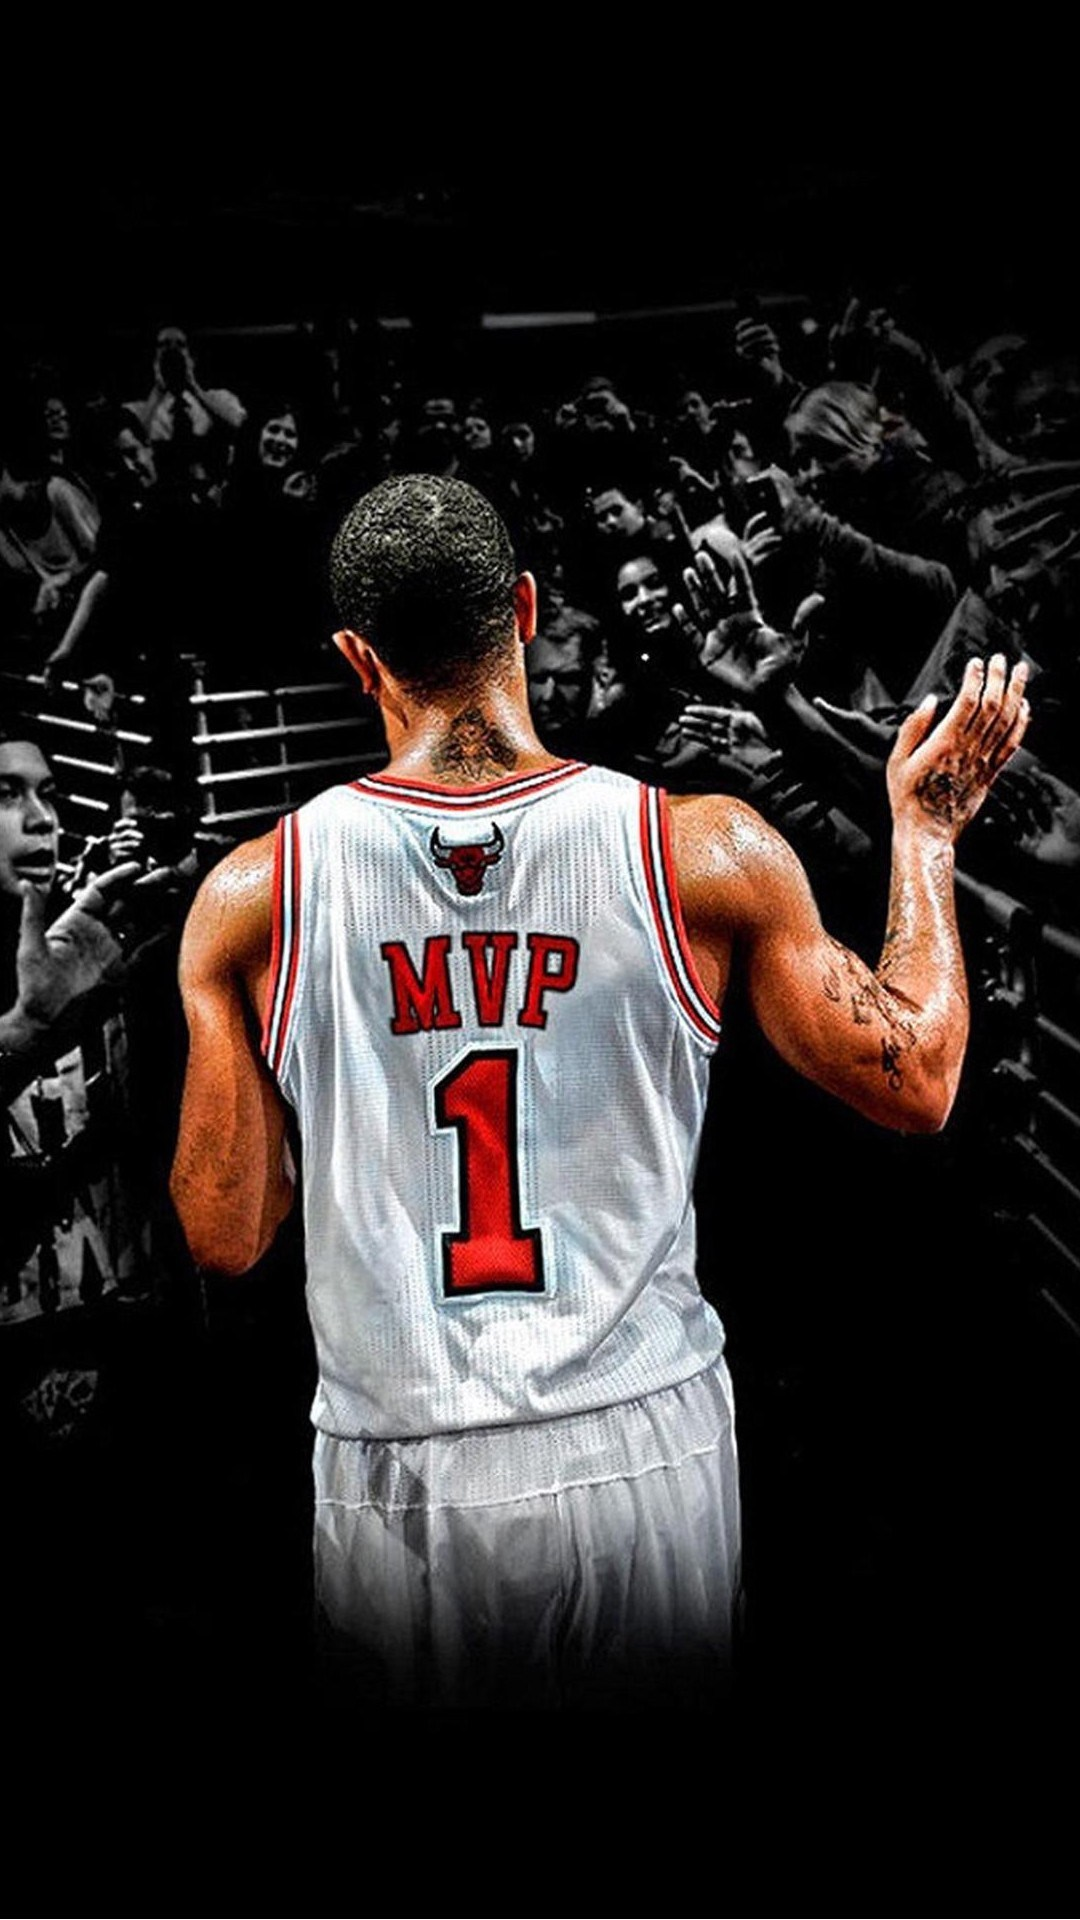 Nba Wallpapers Iphone Posted By Samantha Sellers